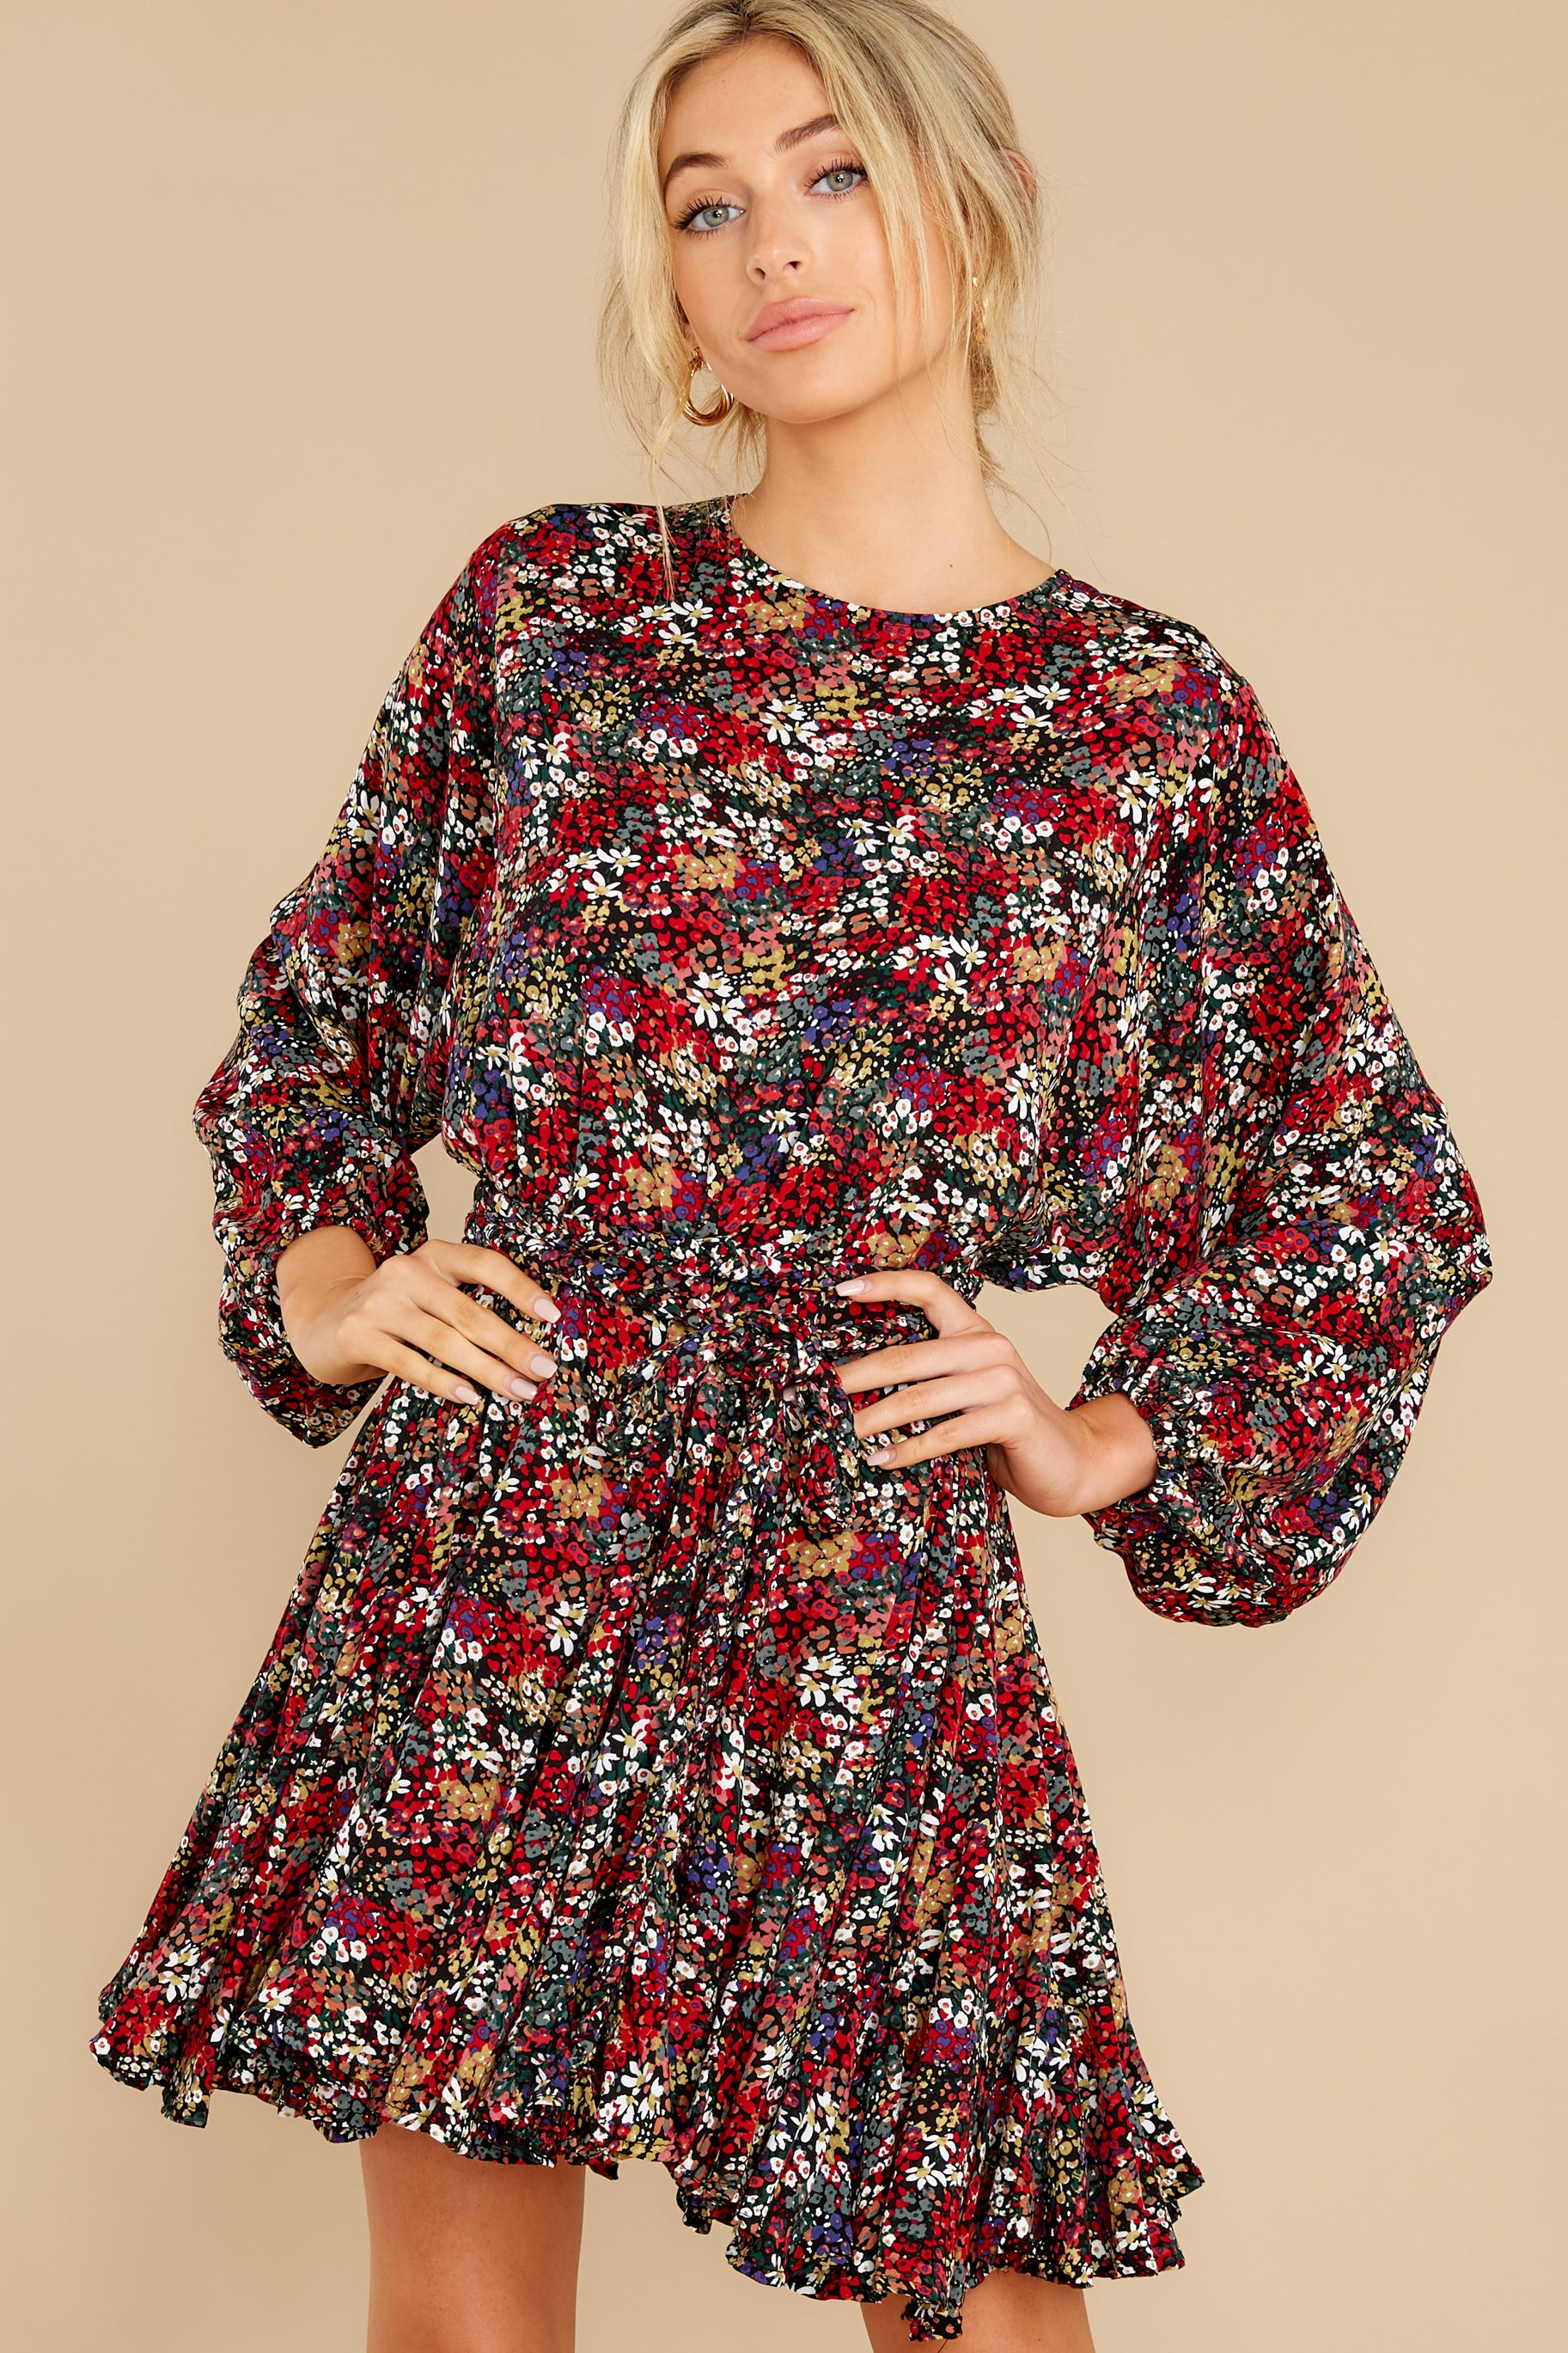 2 Here For You Black Floral Print Dress at reddress.com